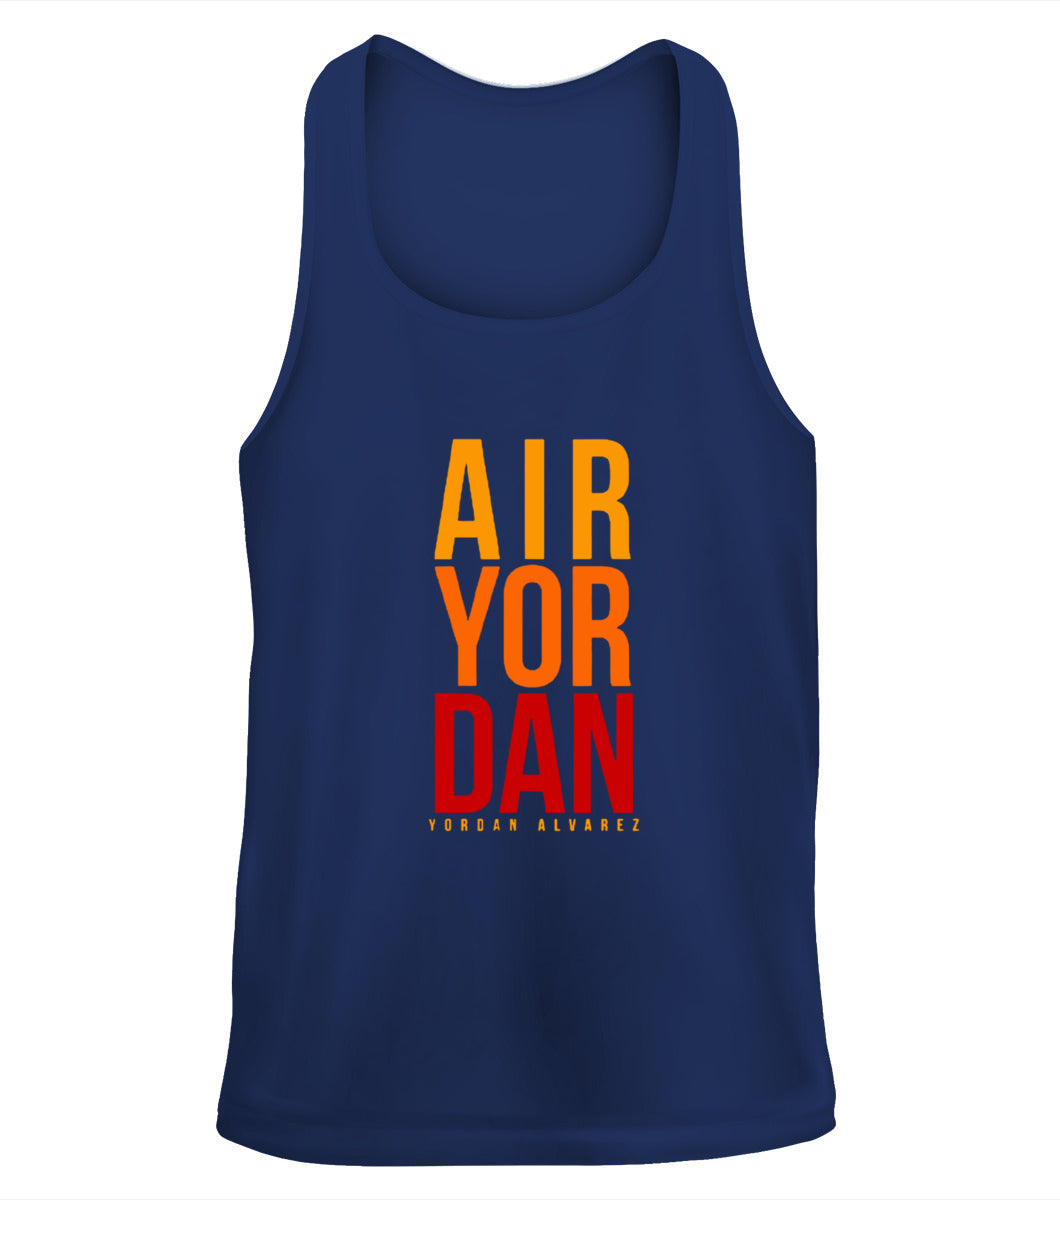 He's Air Yordan Shirt Yordan Alvarez - Houston Ast - Tank Top - Unisex